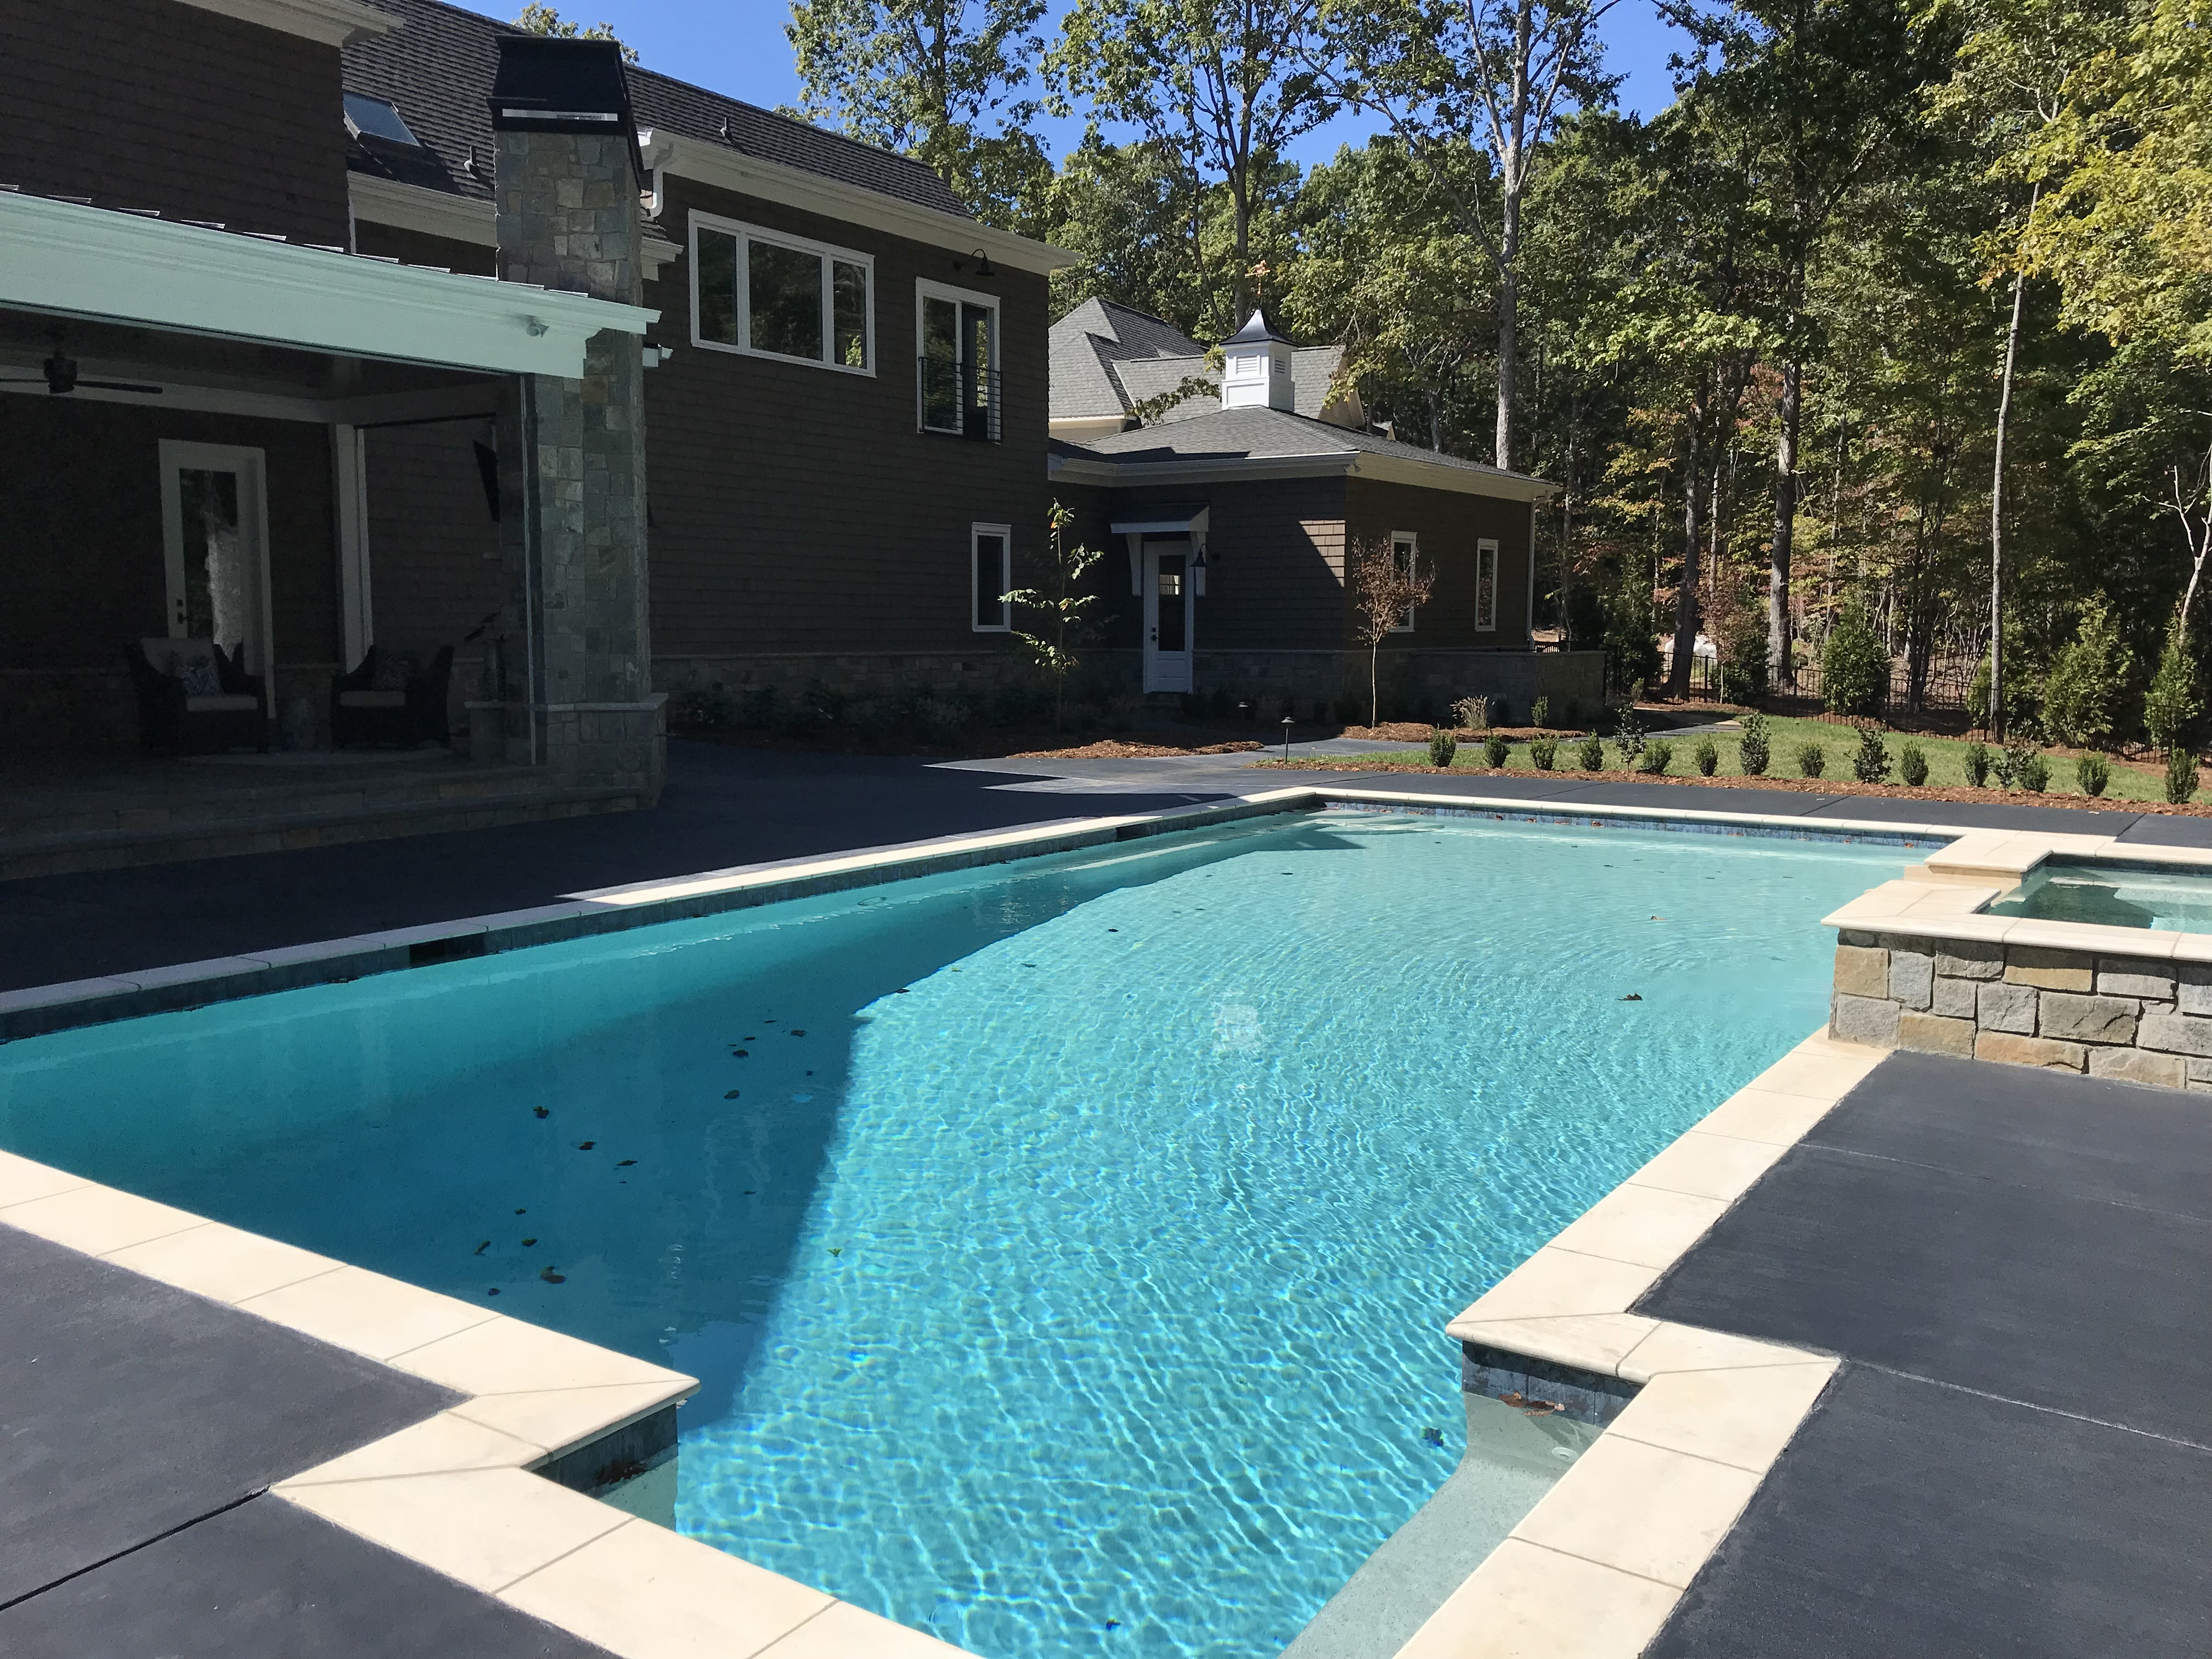 <div class='meta'><div class='origin-logo' data-origin='none'></div><span class='caption-text' data-credit='WTVD photo/Shawn Replogle'>Pool - 5149 Avalaire Oaks, Raleigh, NC - $1.9 million by KJ Construction</span></div>